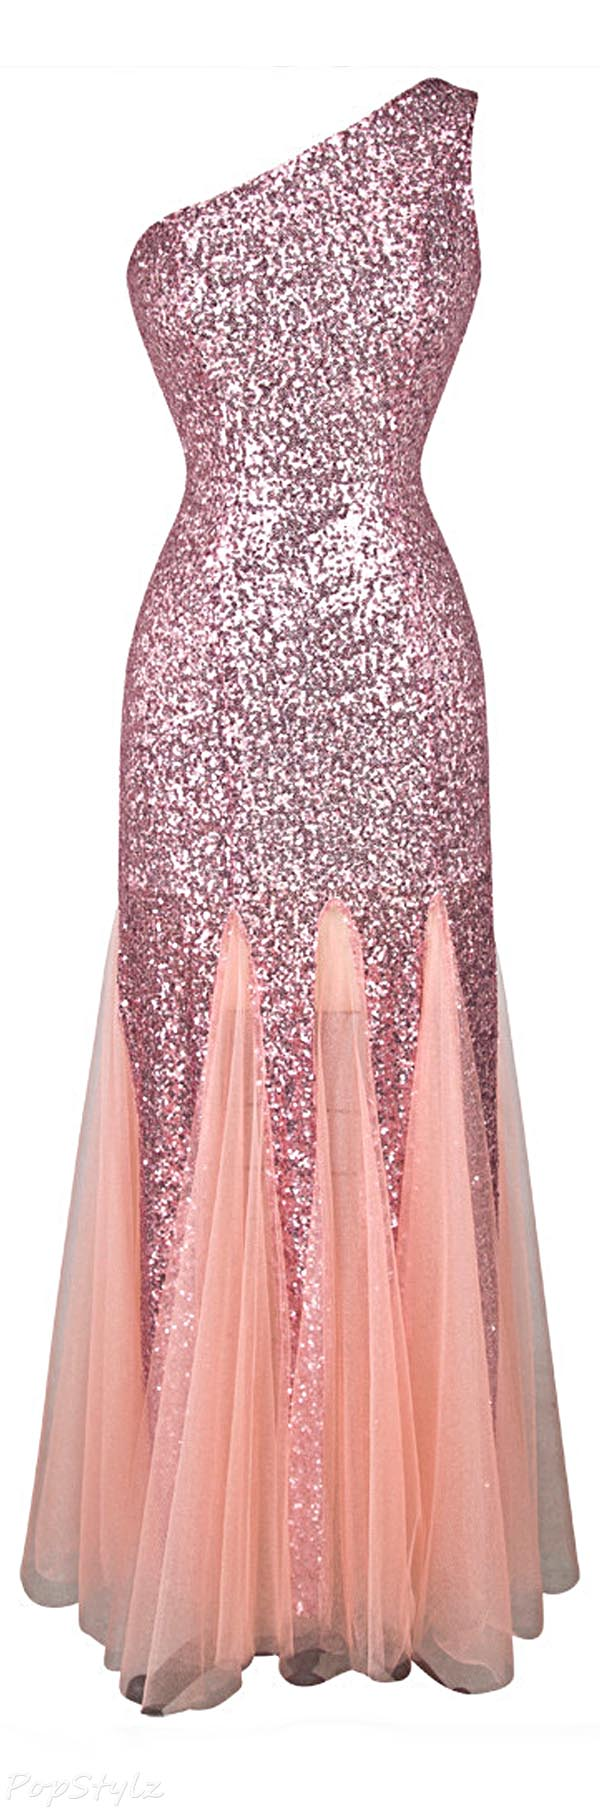 Angel-fashions Twinkling Sequined Mesh Gown